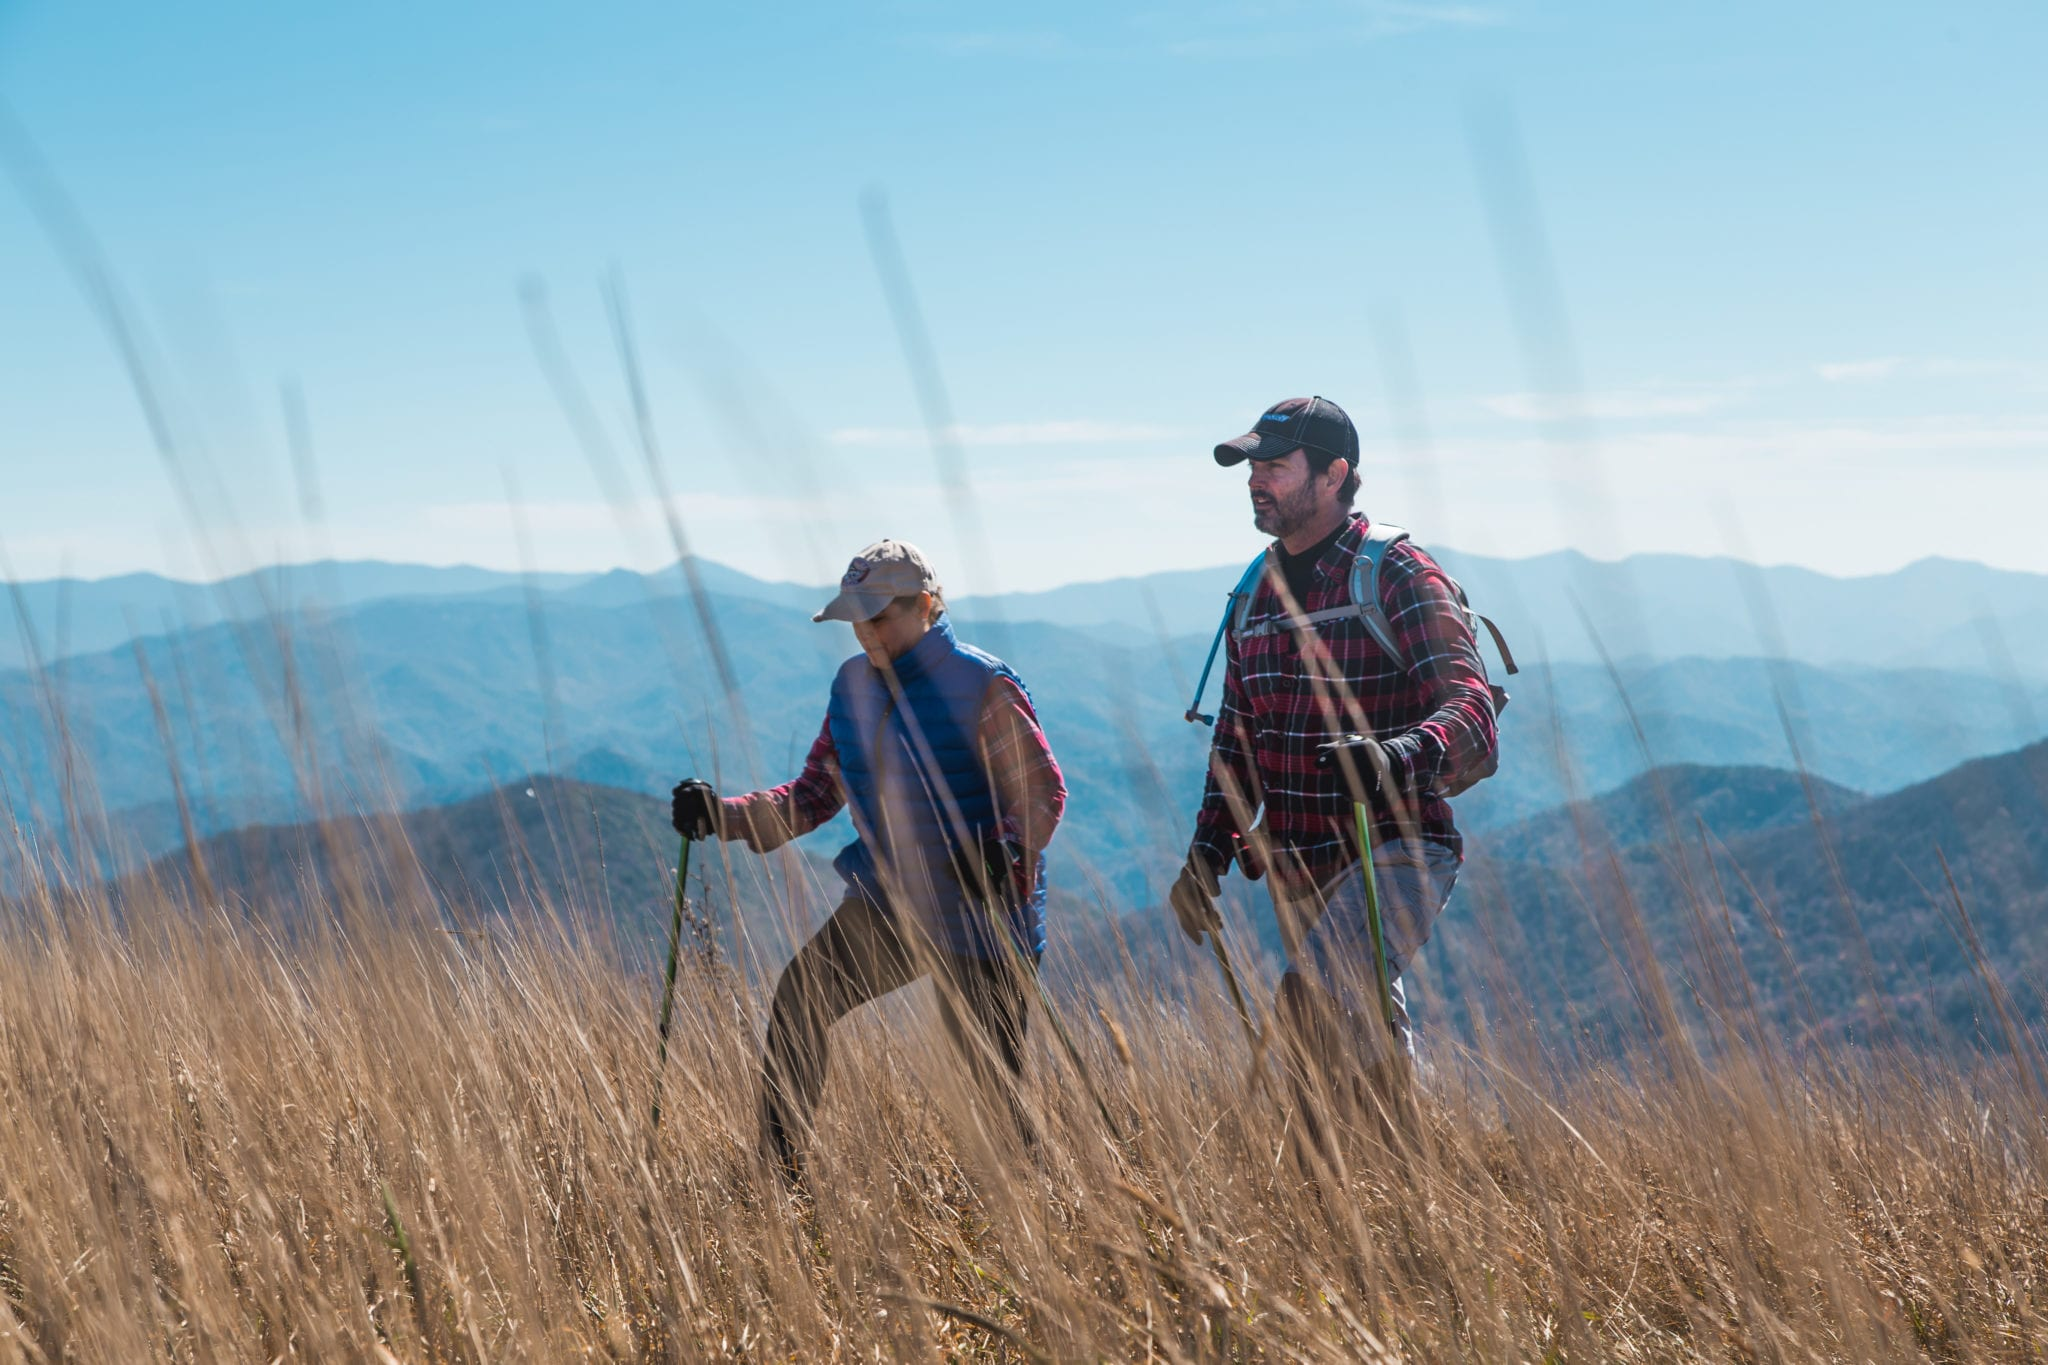 Hikers on Bald Mountain with sticks